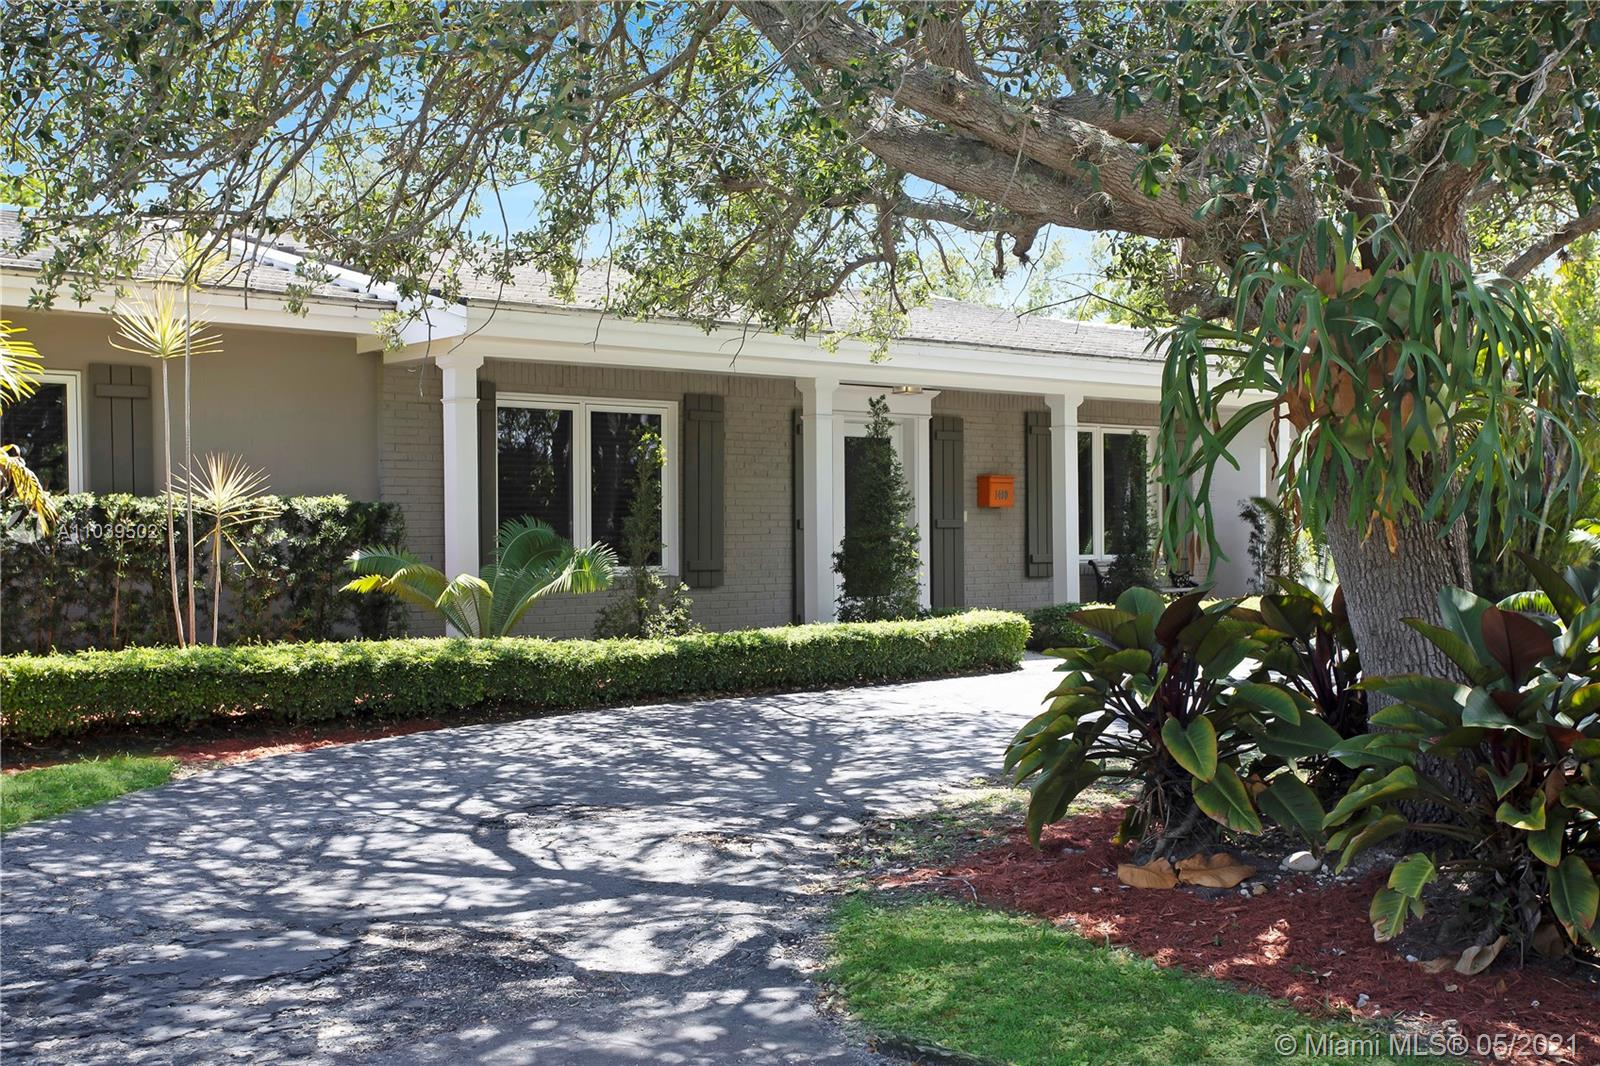 DON'T MISS THIS OPPORTUNITY TO LIVE IN EXCLUSIVE GATED/SECURE - GABLES-BY-THE-SEA COMMUNITY! PINECREST ELEMENTARY! WALK YOUR CHILDREN TO GABLES-BY-THE-SEA PARK OR GULLIVER ACADEMY; BRITE & SPACIOUS LIVINGROOM, DINING, FAMILY; EAT IN KITCHEN/BREAKFAST BAR; STAINLESS STEEL APPLIANCES; CERAMIC FLOORS; UPDATED BATHS; MASTER WALK IN CLOSET; LAUNDRY ROOM; EXTRA AVAILABLE ATTIC STORAGE SPACE; IMPACT FRONT DOOR & WINDOWS THROUGH-OUT, NEWLY RESURFACED POOL, PATIO, GARDEN AREA. GREAT FOR ENTERTAINING! WON'T LAST!!